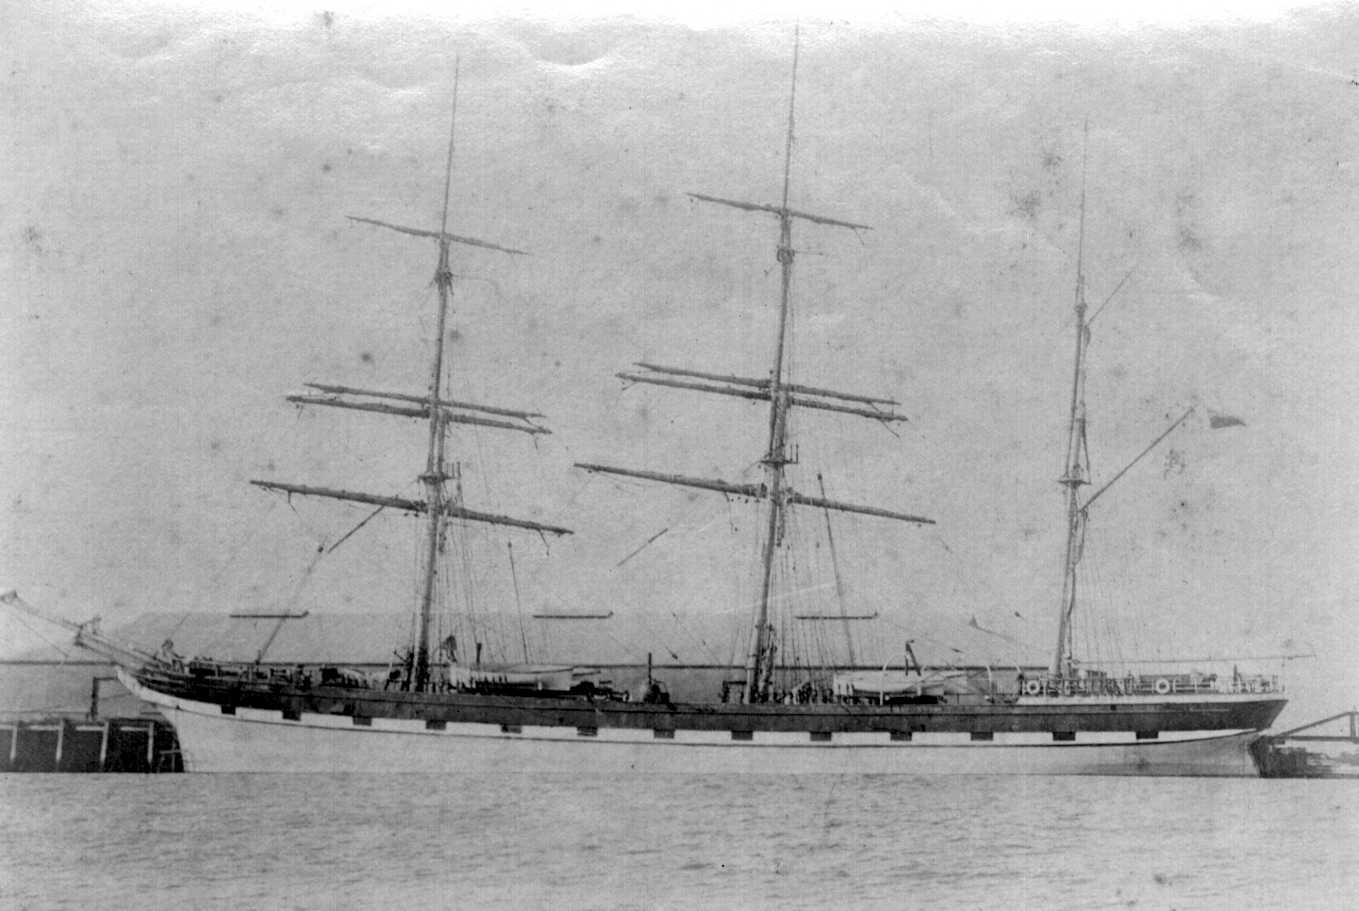 Loch Ness, built in 1869  This image shows vessel at Port with some rowers in foreground.